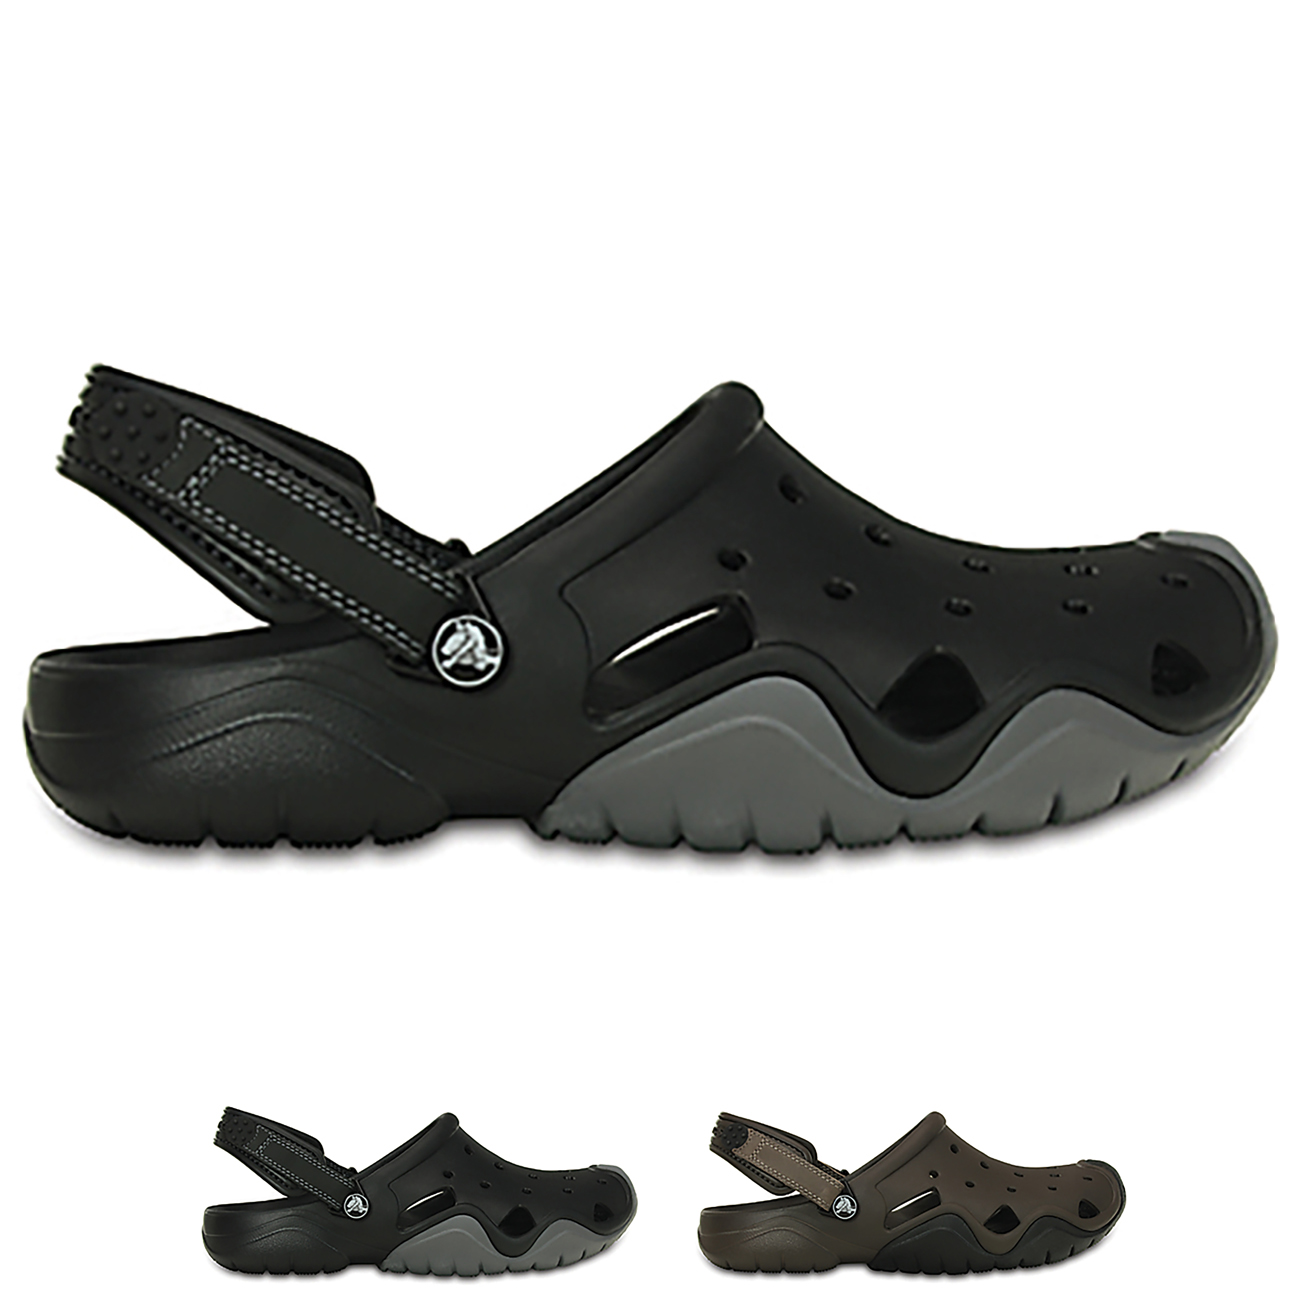 Mens Crocs Swiftwater Clog Closed Toe Pool Casual Sea Beach Sandals All Sizes